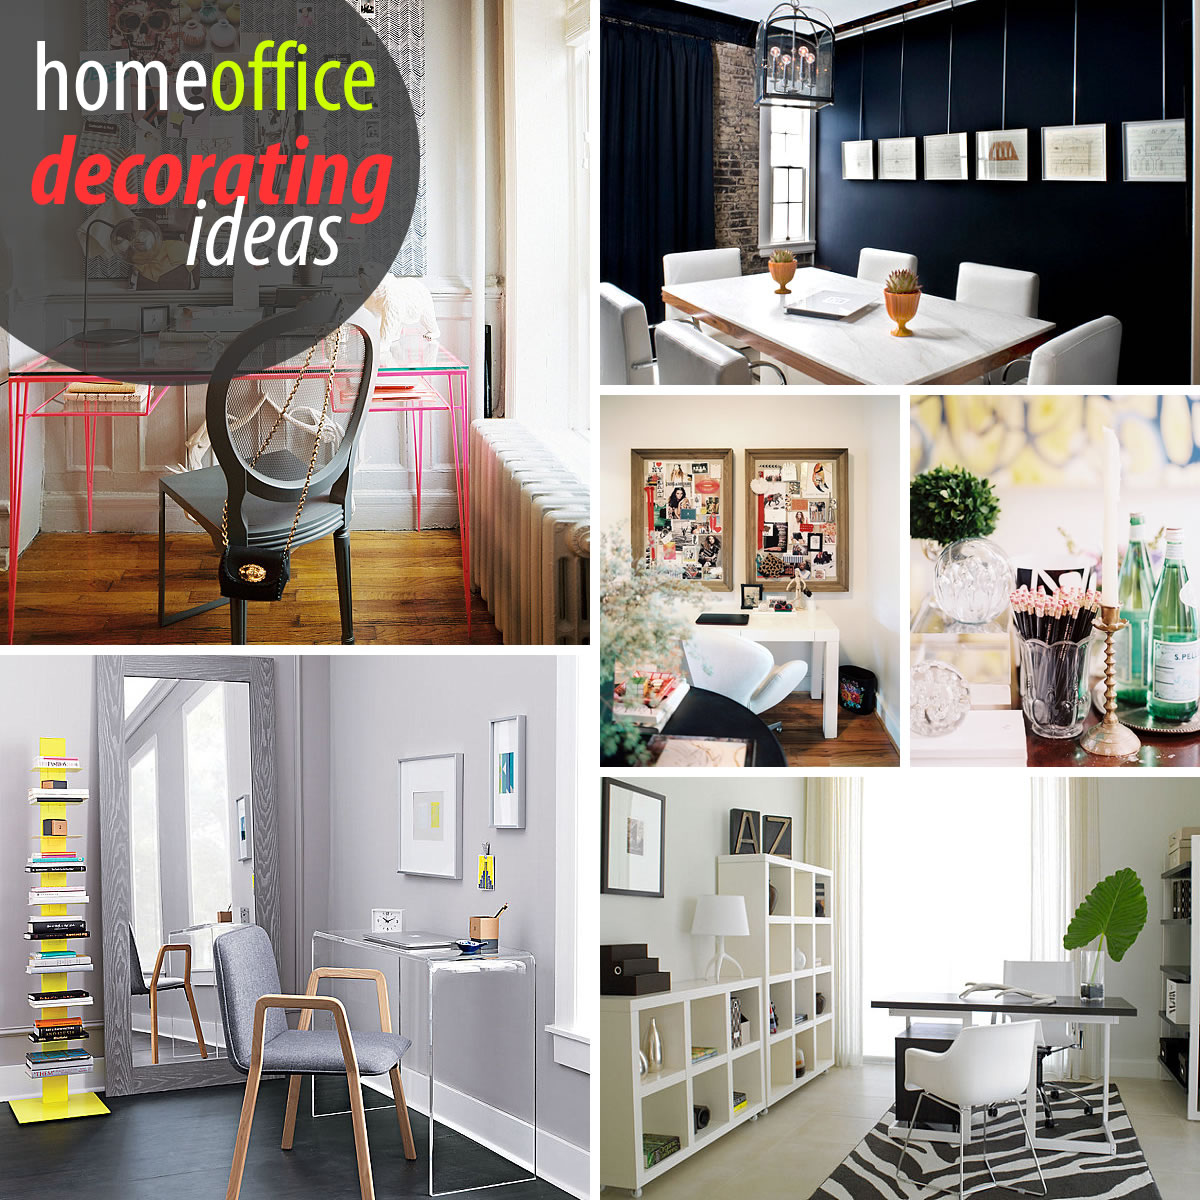 Home Office Design Decorating Ideas: Creative Home Office Decorating Ideas